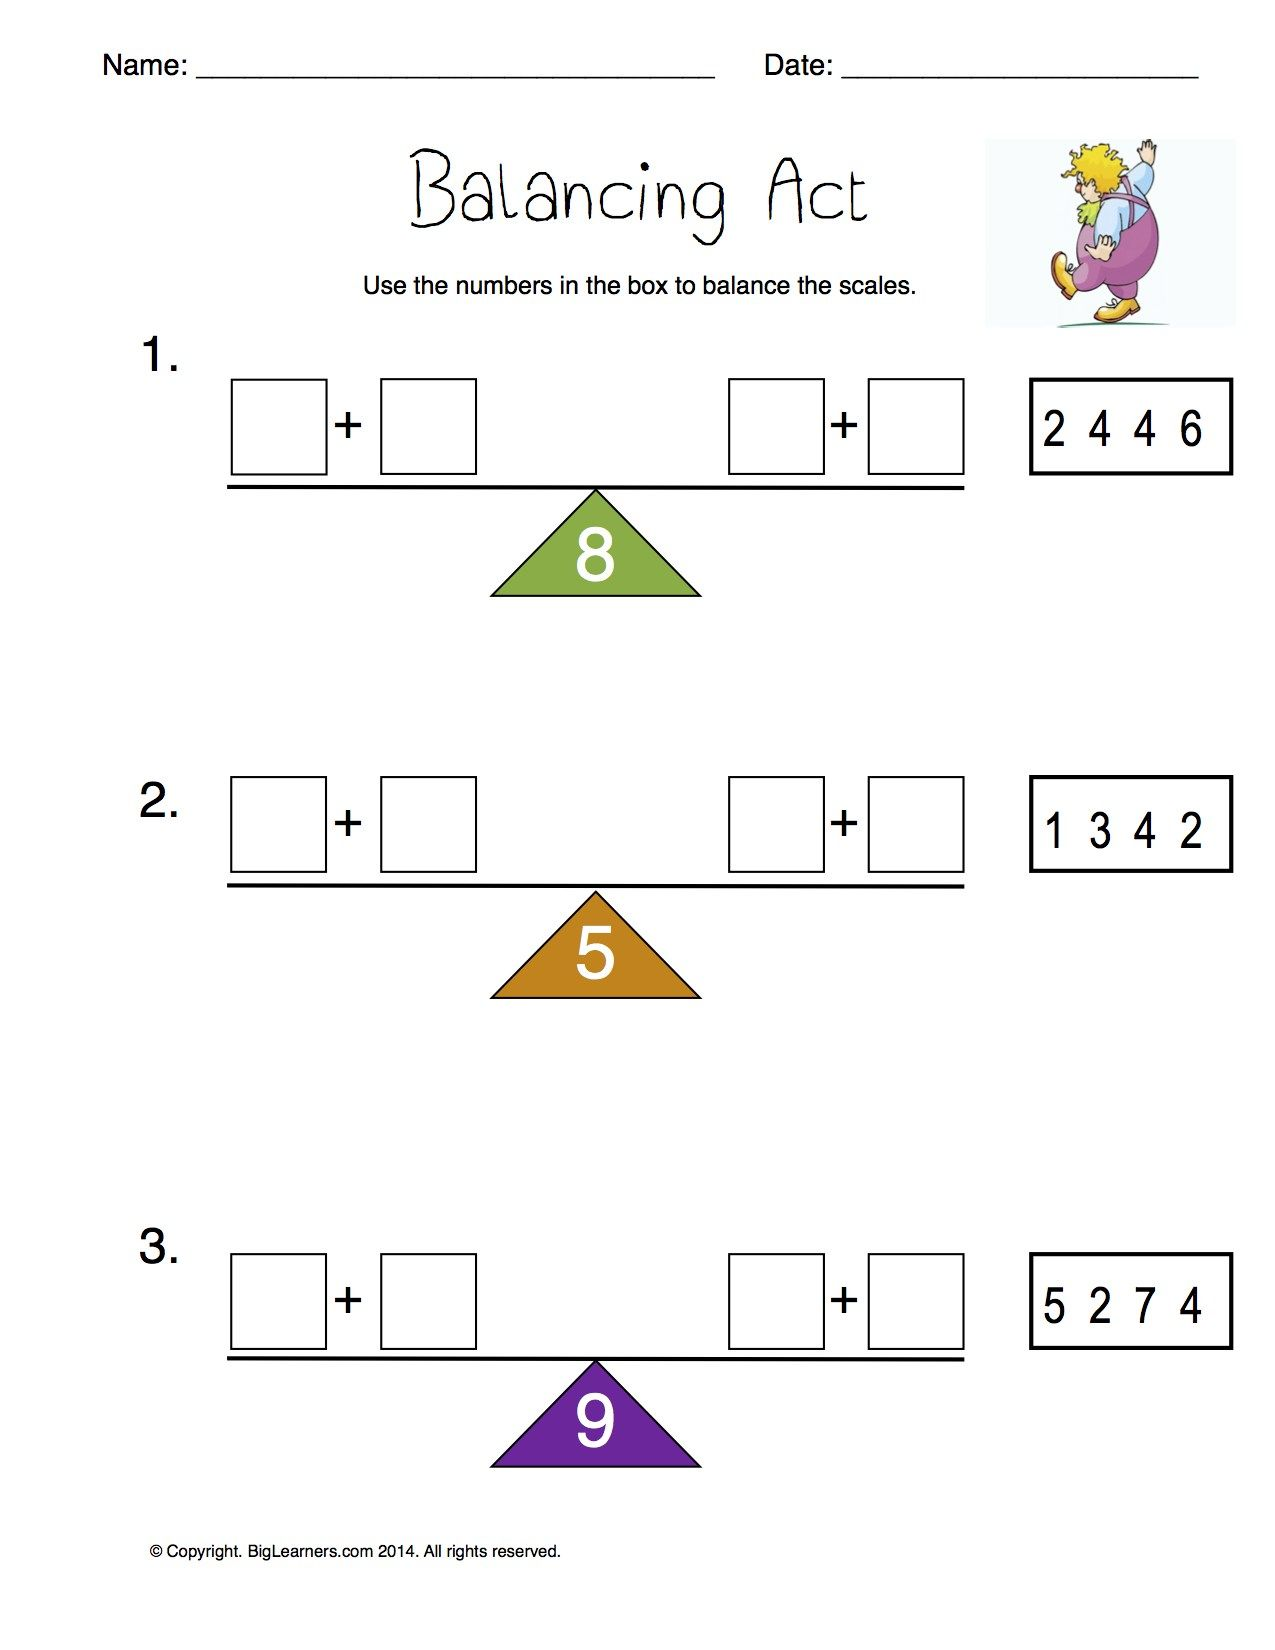 Worksheet Balancing Act Write The Numbers From The Box To Make Each Scale Balance Math Lessons First Grade Math Math